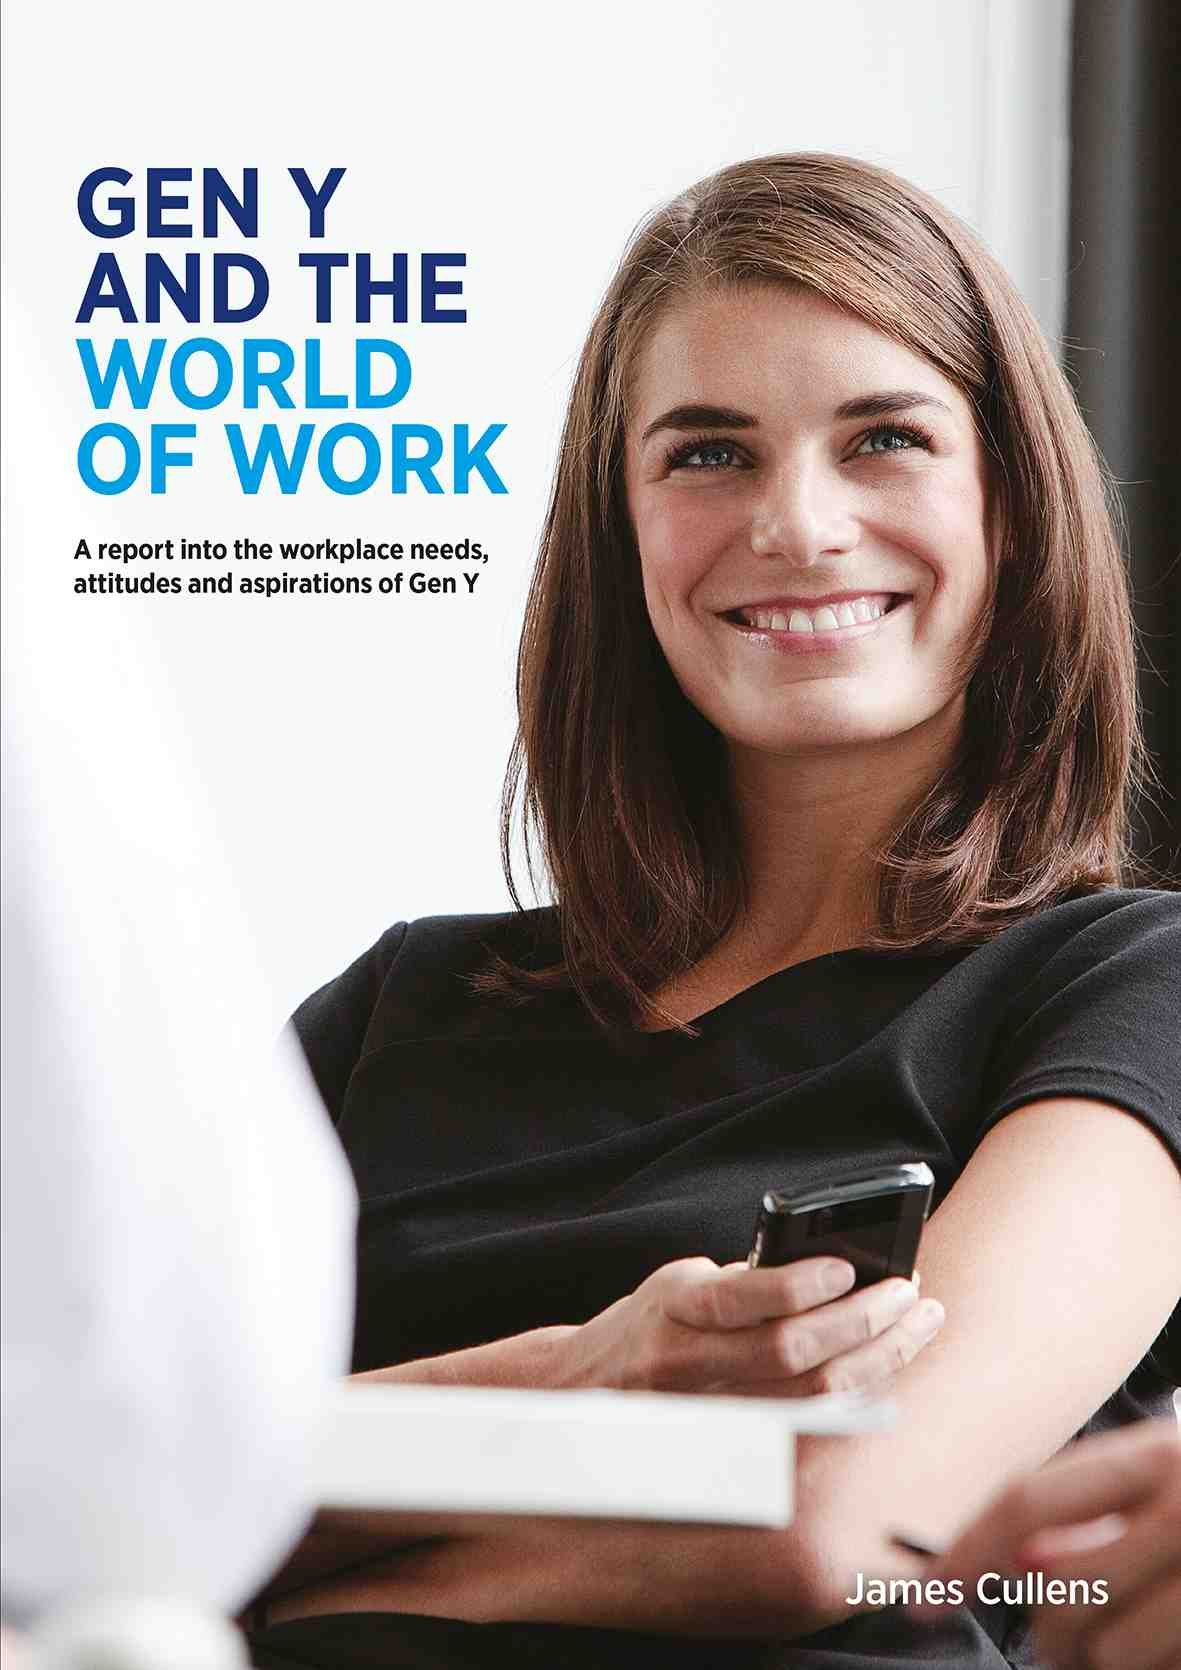 generation y and the world of work amazon co uk james cullen generation y and the world of work amazon co uk james cullen hays 9780857194312 books